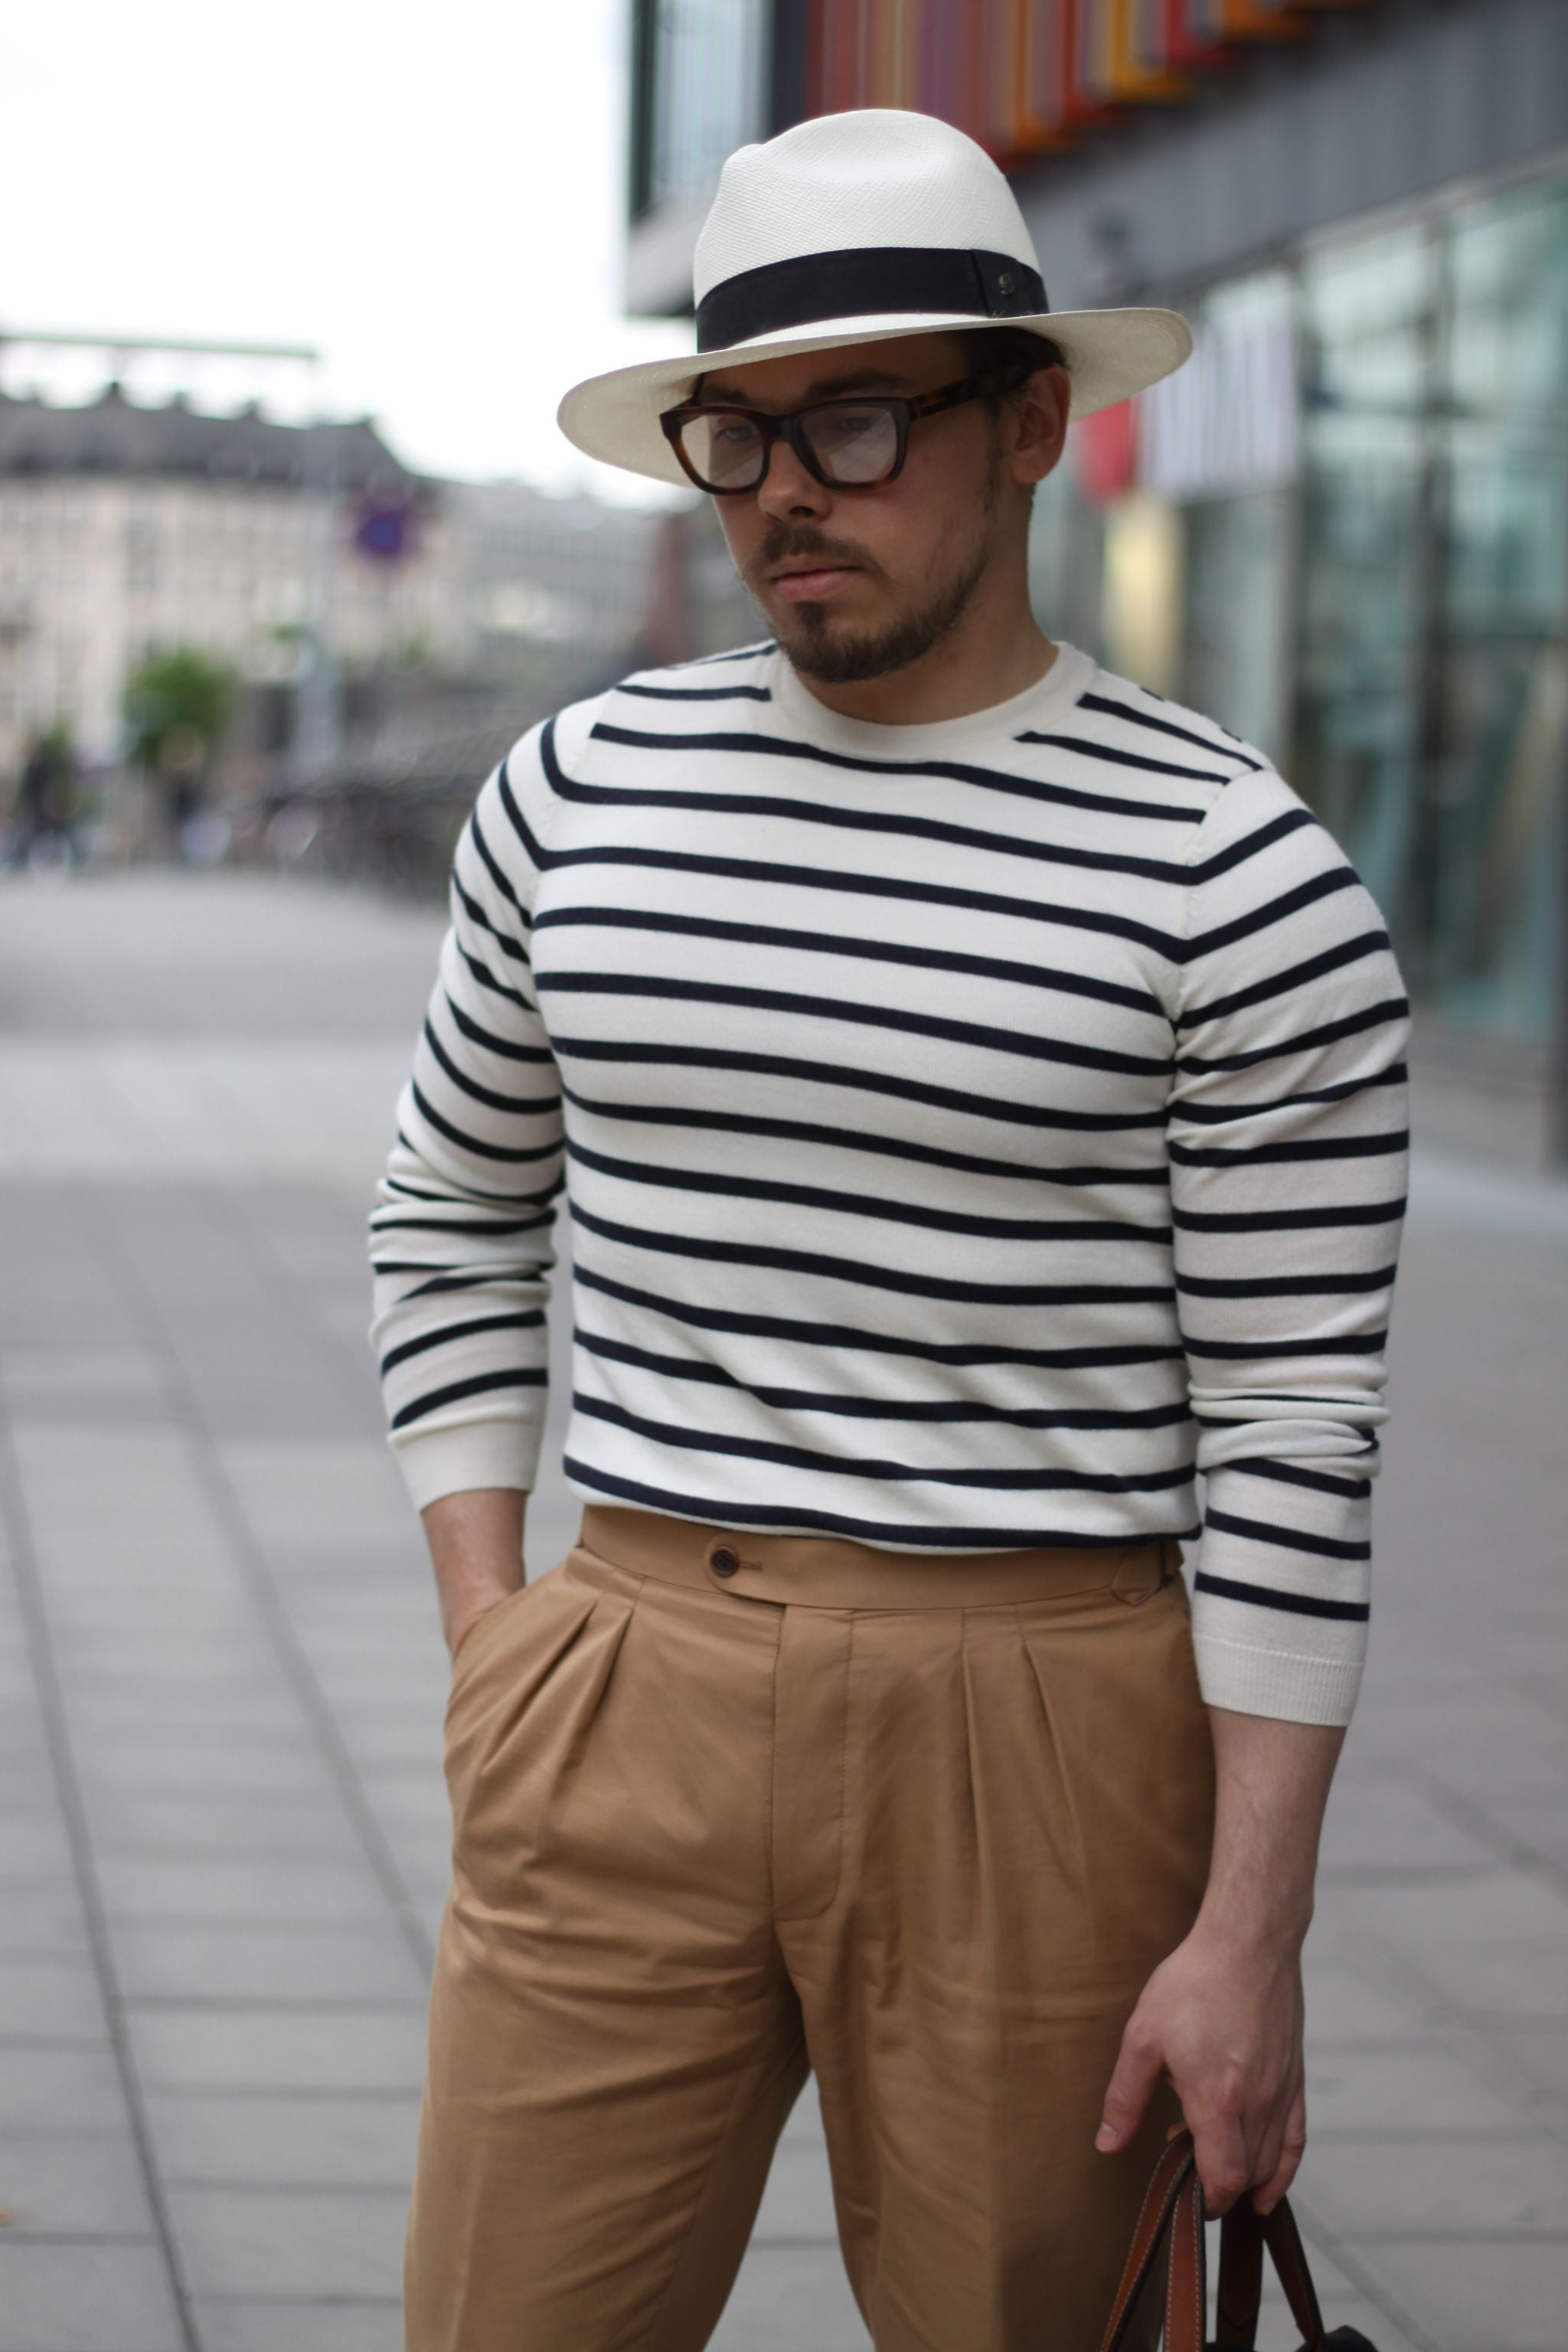 Panama hat with striped shirt and cotton slacks